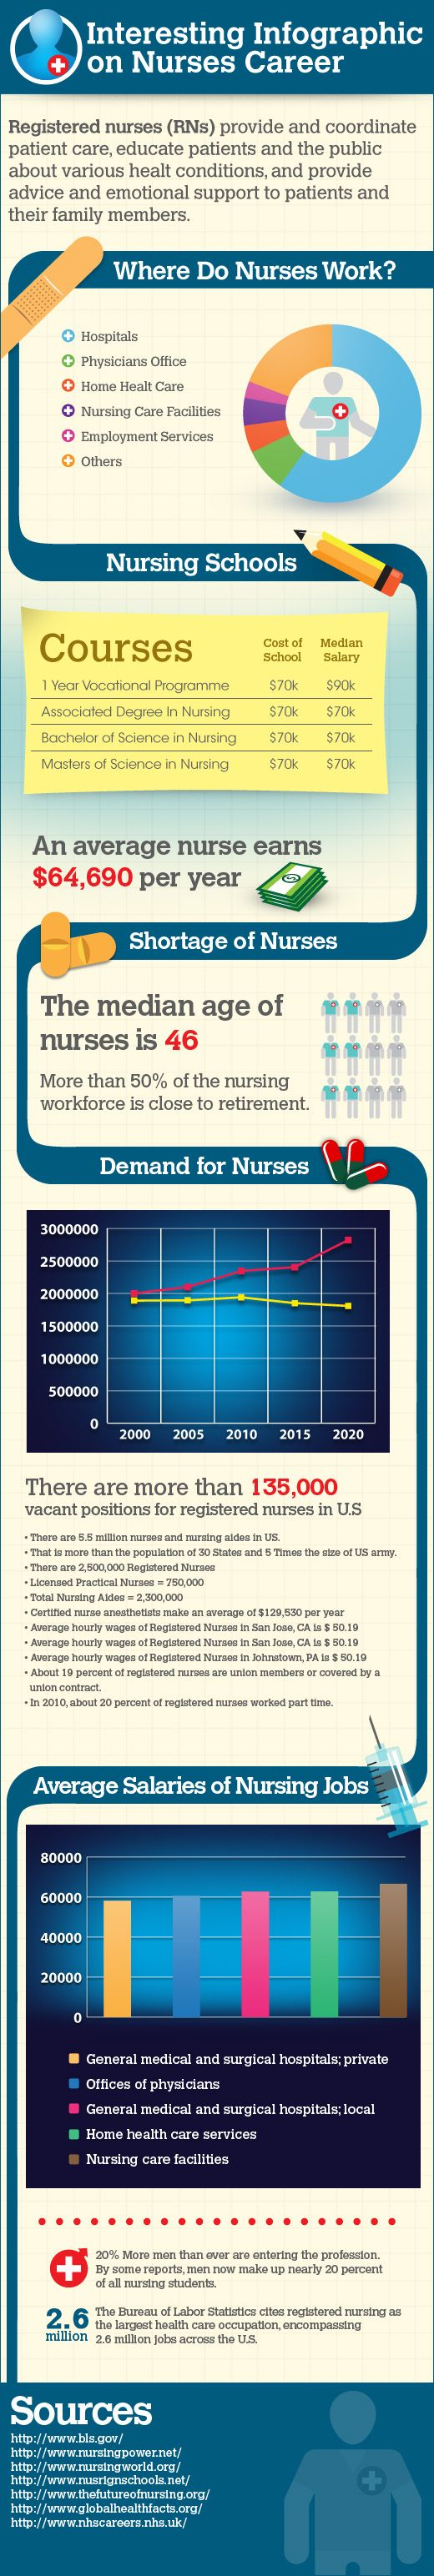 best images about quirky job facts police interesting infographic on nursing as a career take a look resumecompanion